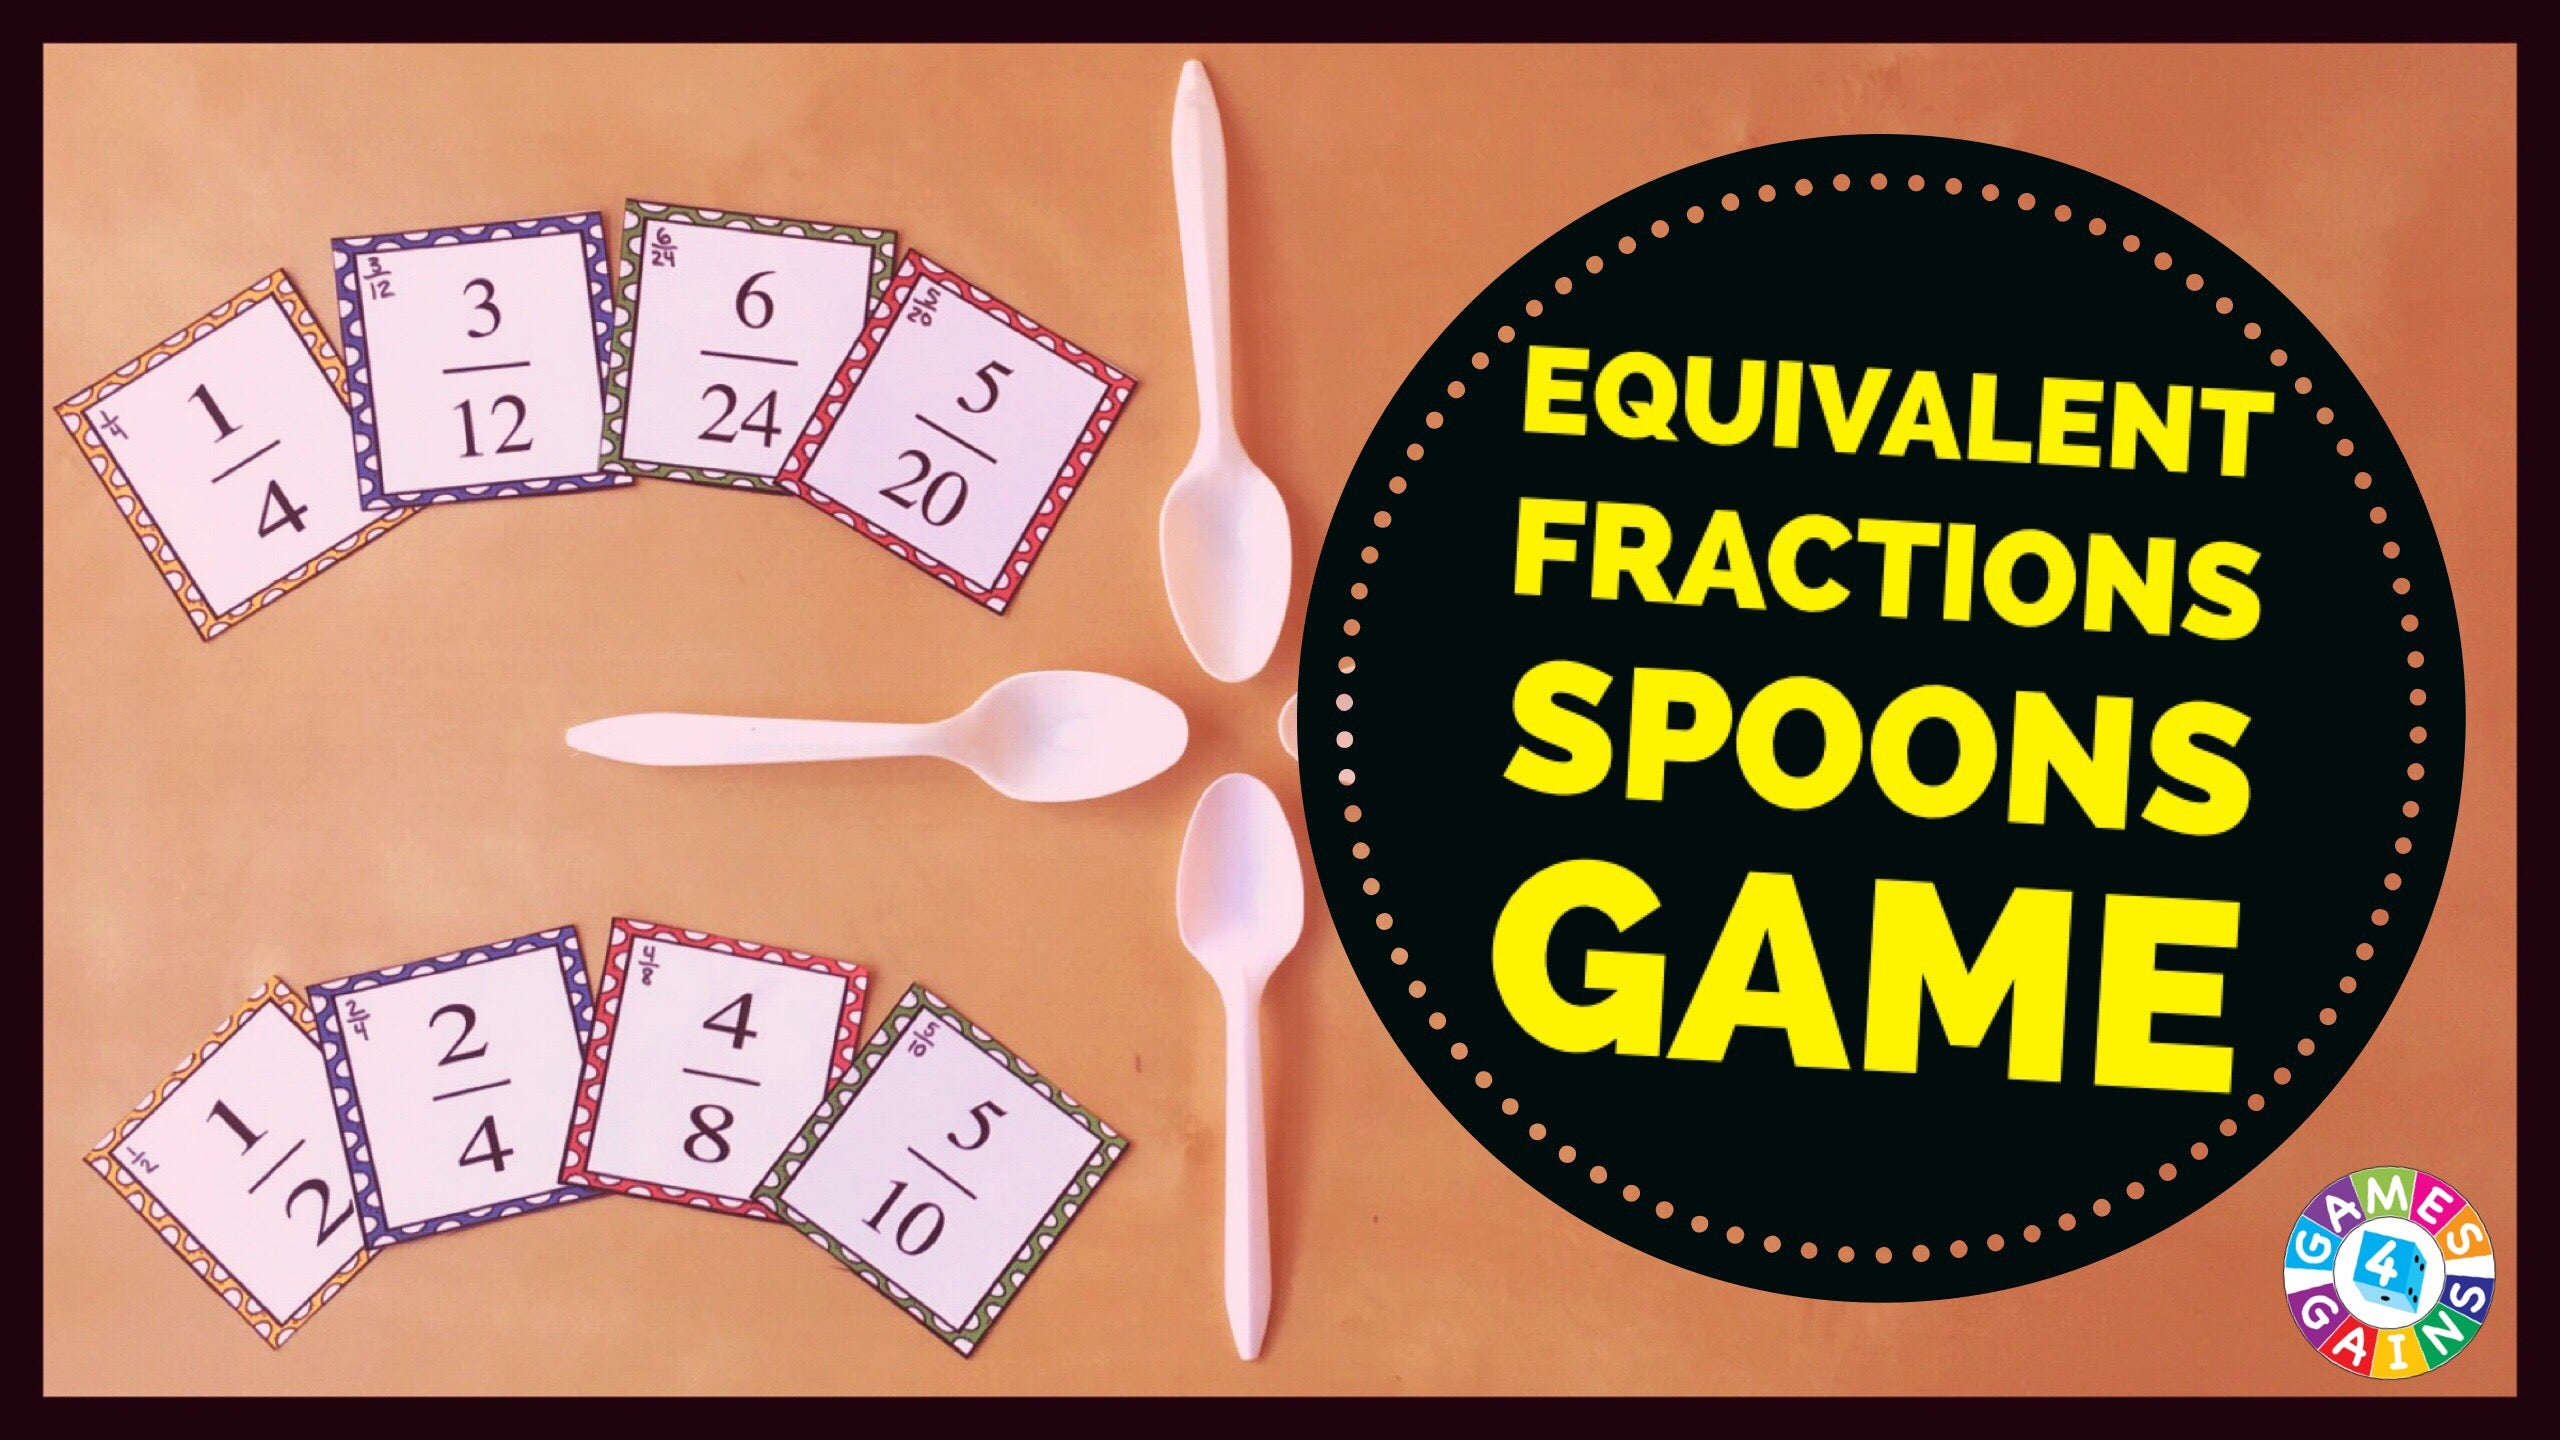 photo regarding Simplifying Fractions Game Printable referred to as Identical Fractions Video game of Spoons Online games 4 Benefits